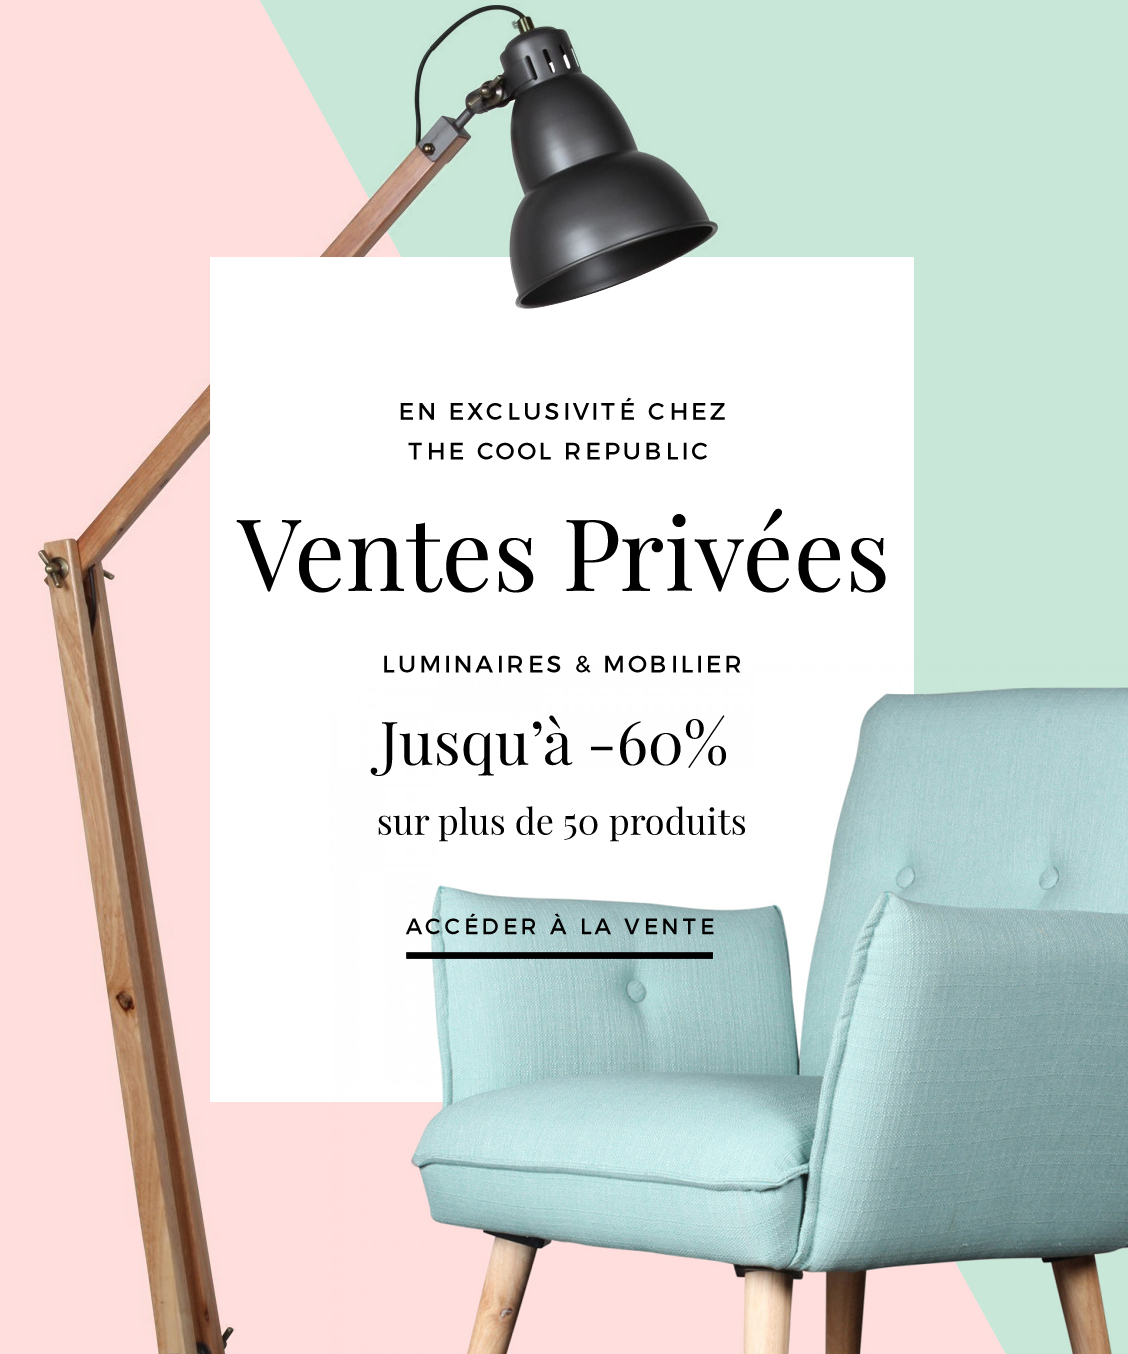 Vente priv e archives le blog d co de mlc - Ventes privees mobilier ...